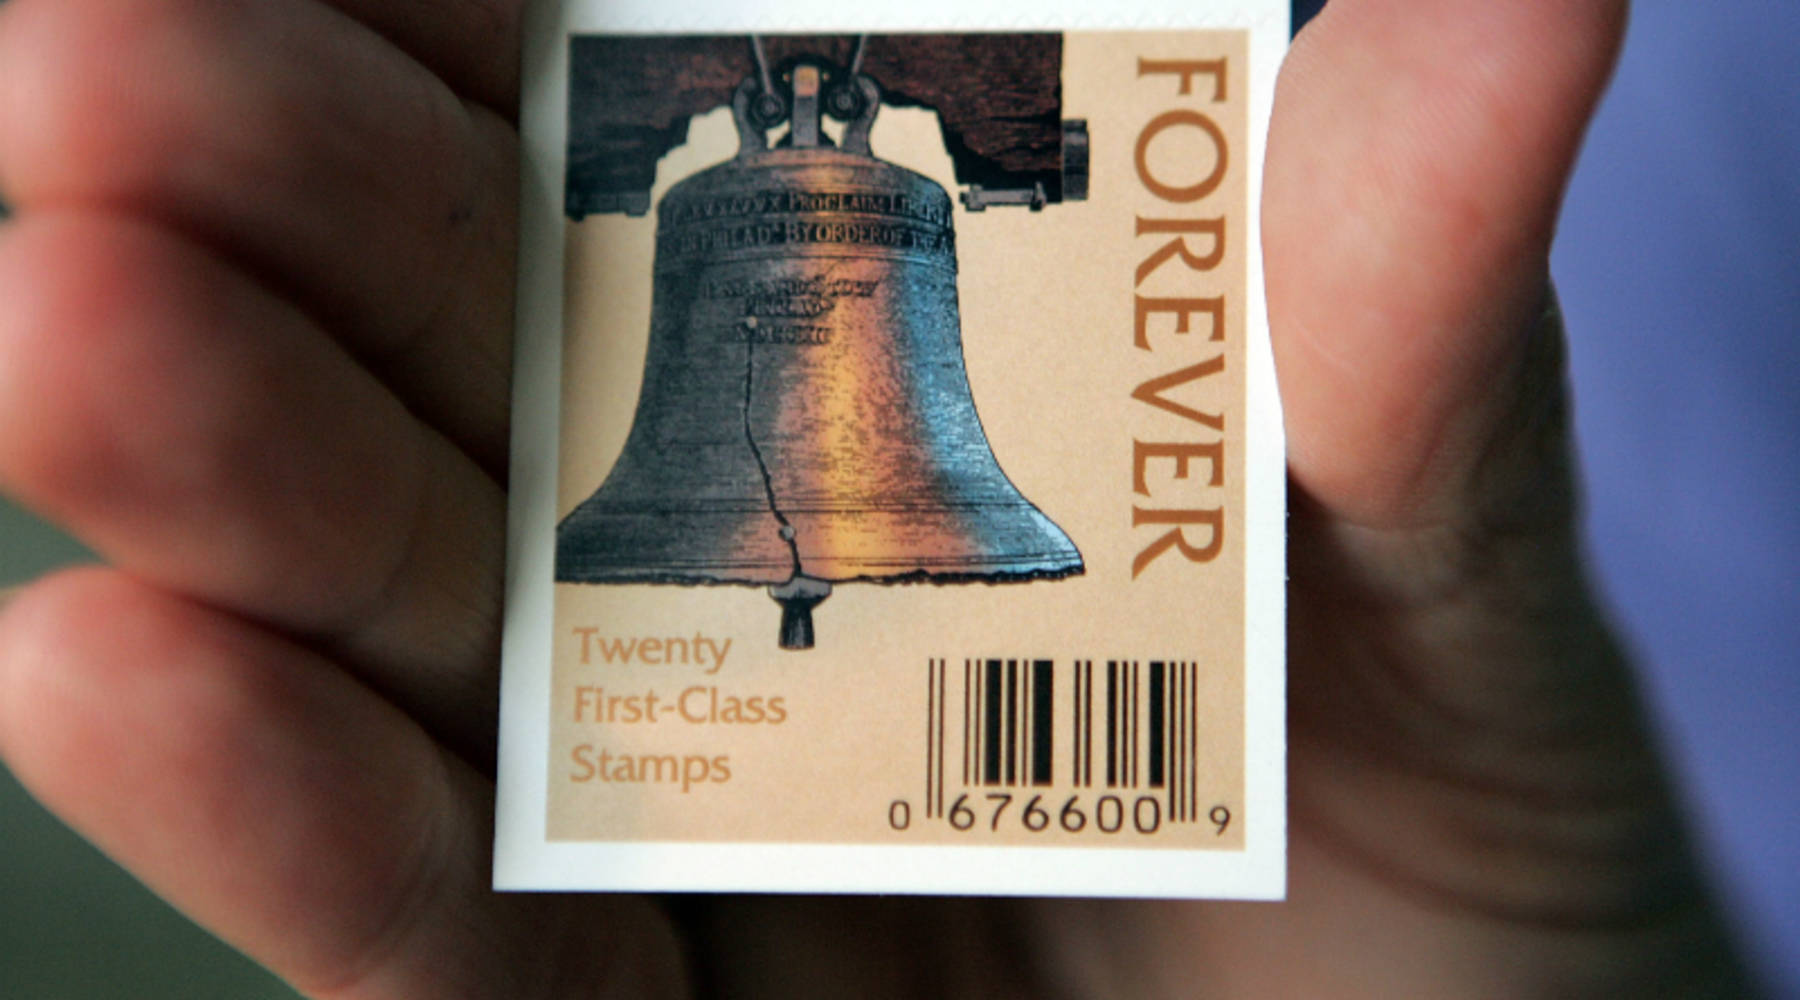 Forever Stamp hoarders: your investment just got a little more